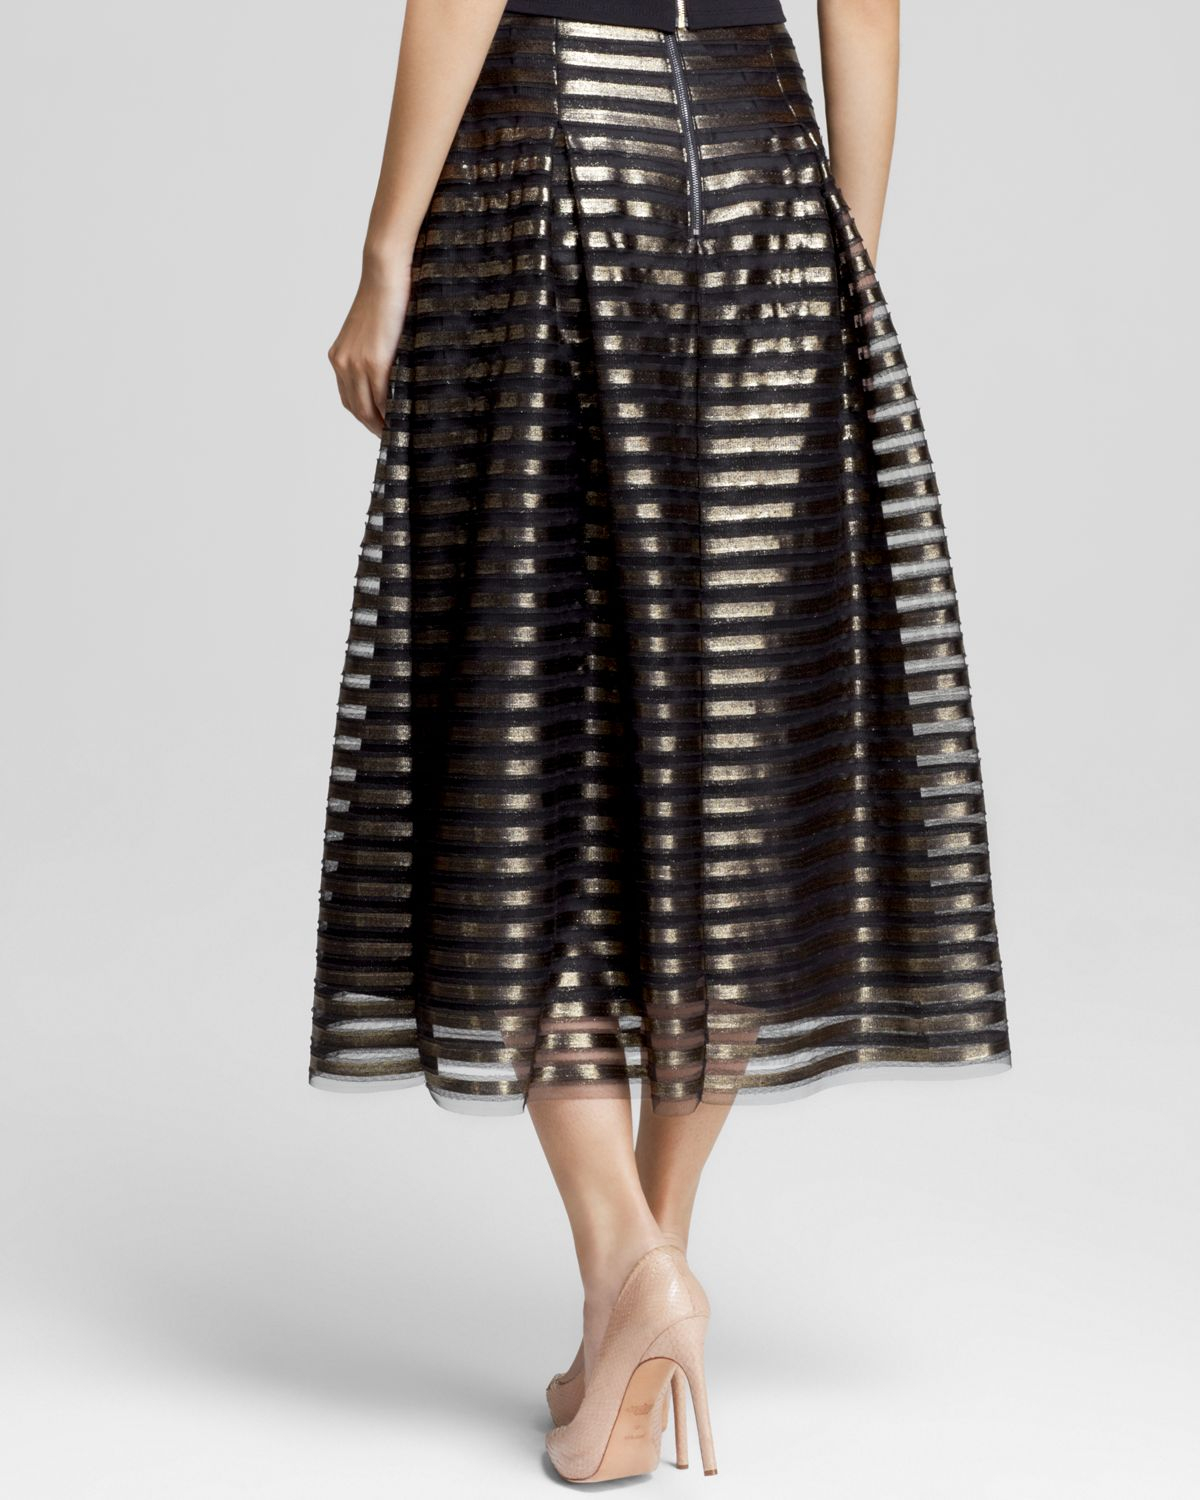 Abs by allen schwartz Striped Metallic Skirt in Black | Lyst